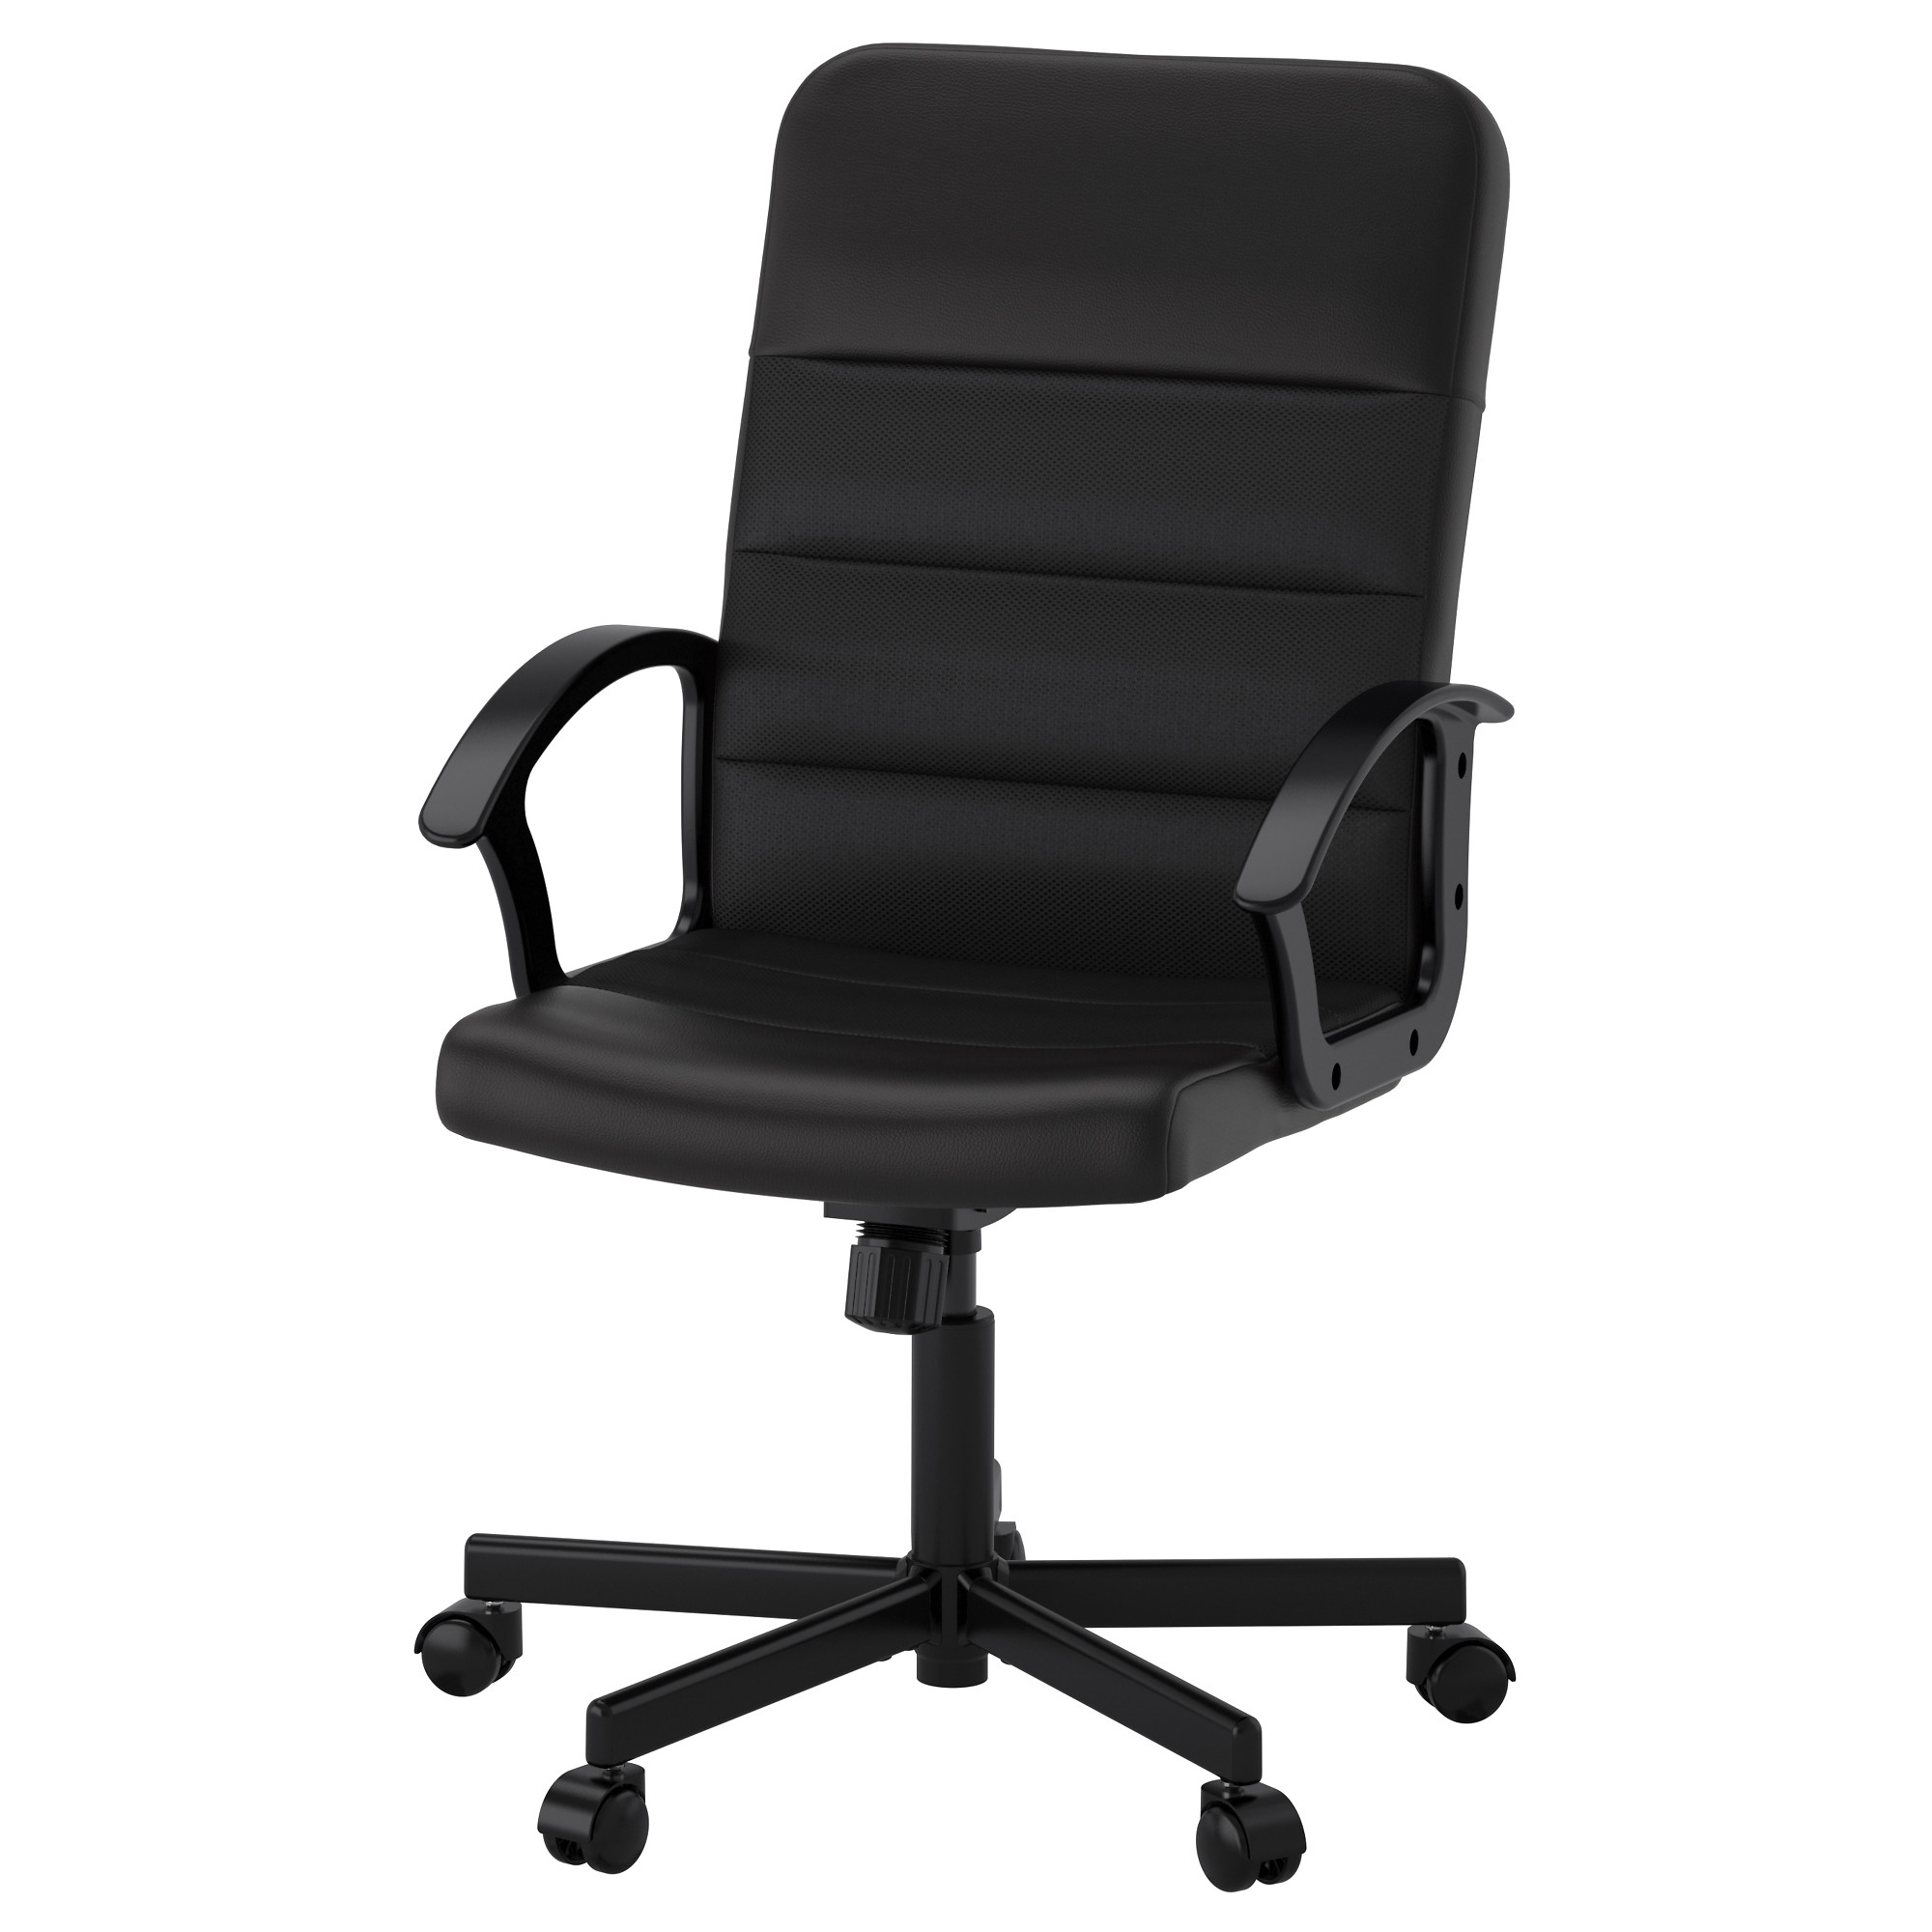 White Leather Office Chair Ikea RENBERGET Swivel Chair Bomstad Black Tested For 242 Lb 8 Oz Width 23 White Leather Office Ikea N